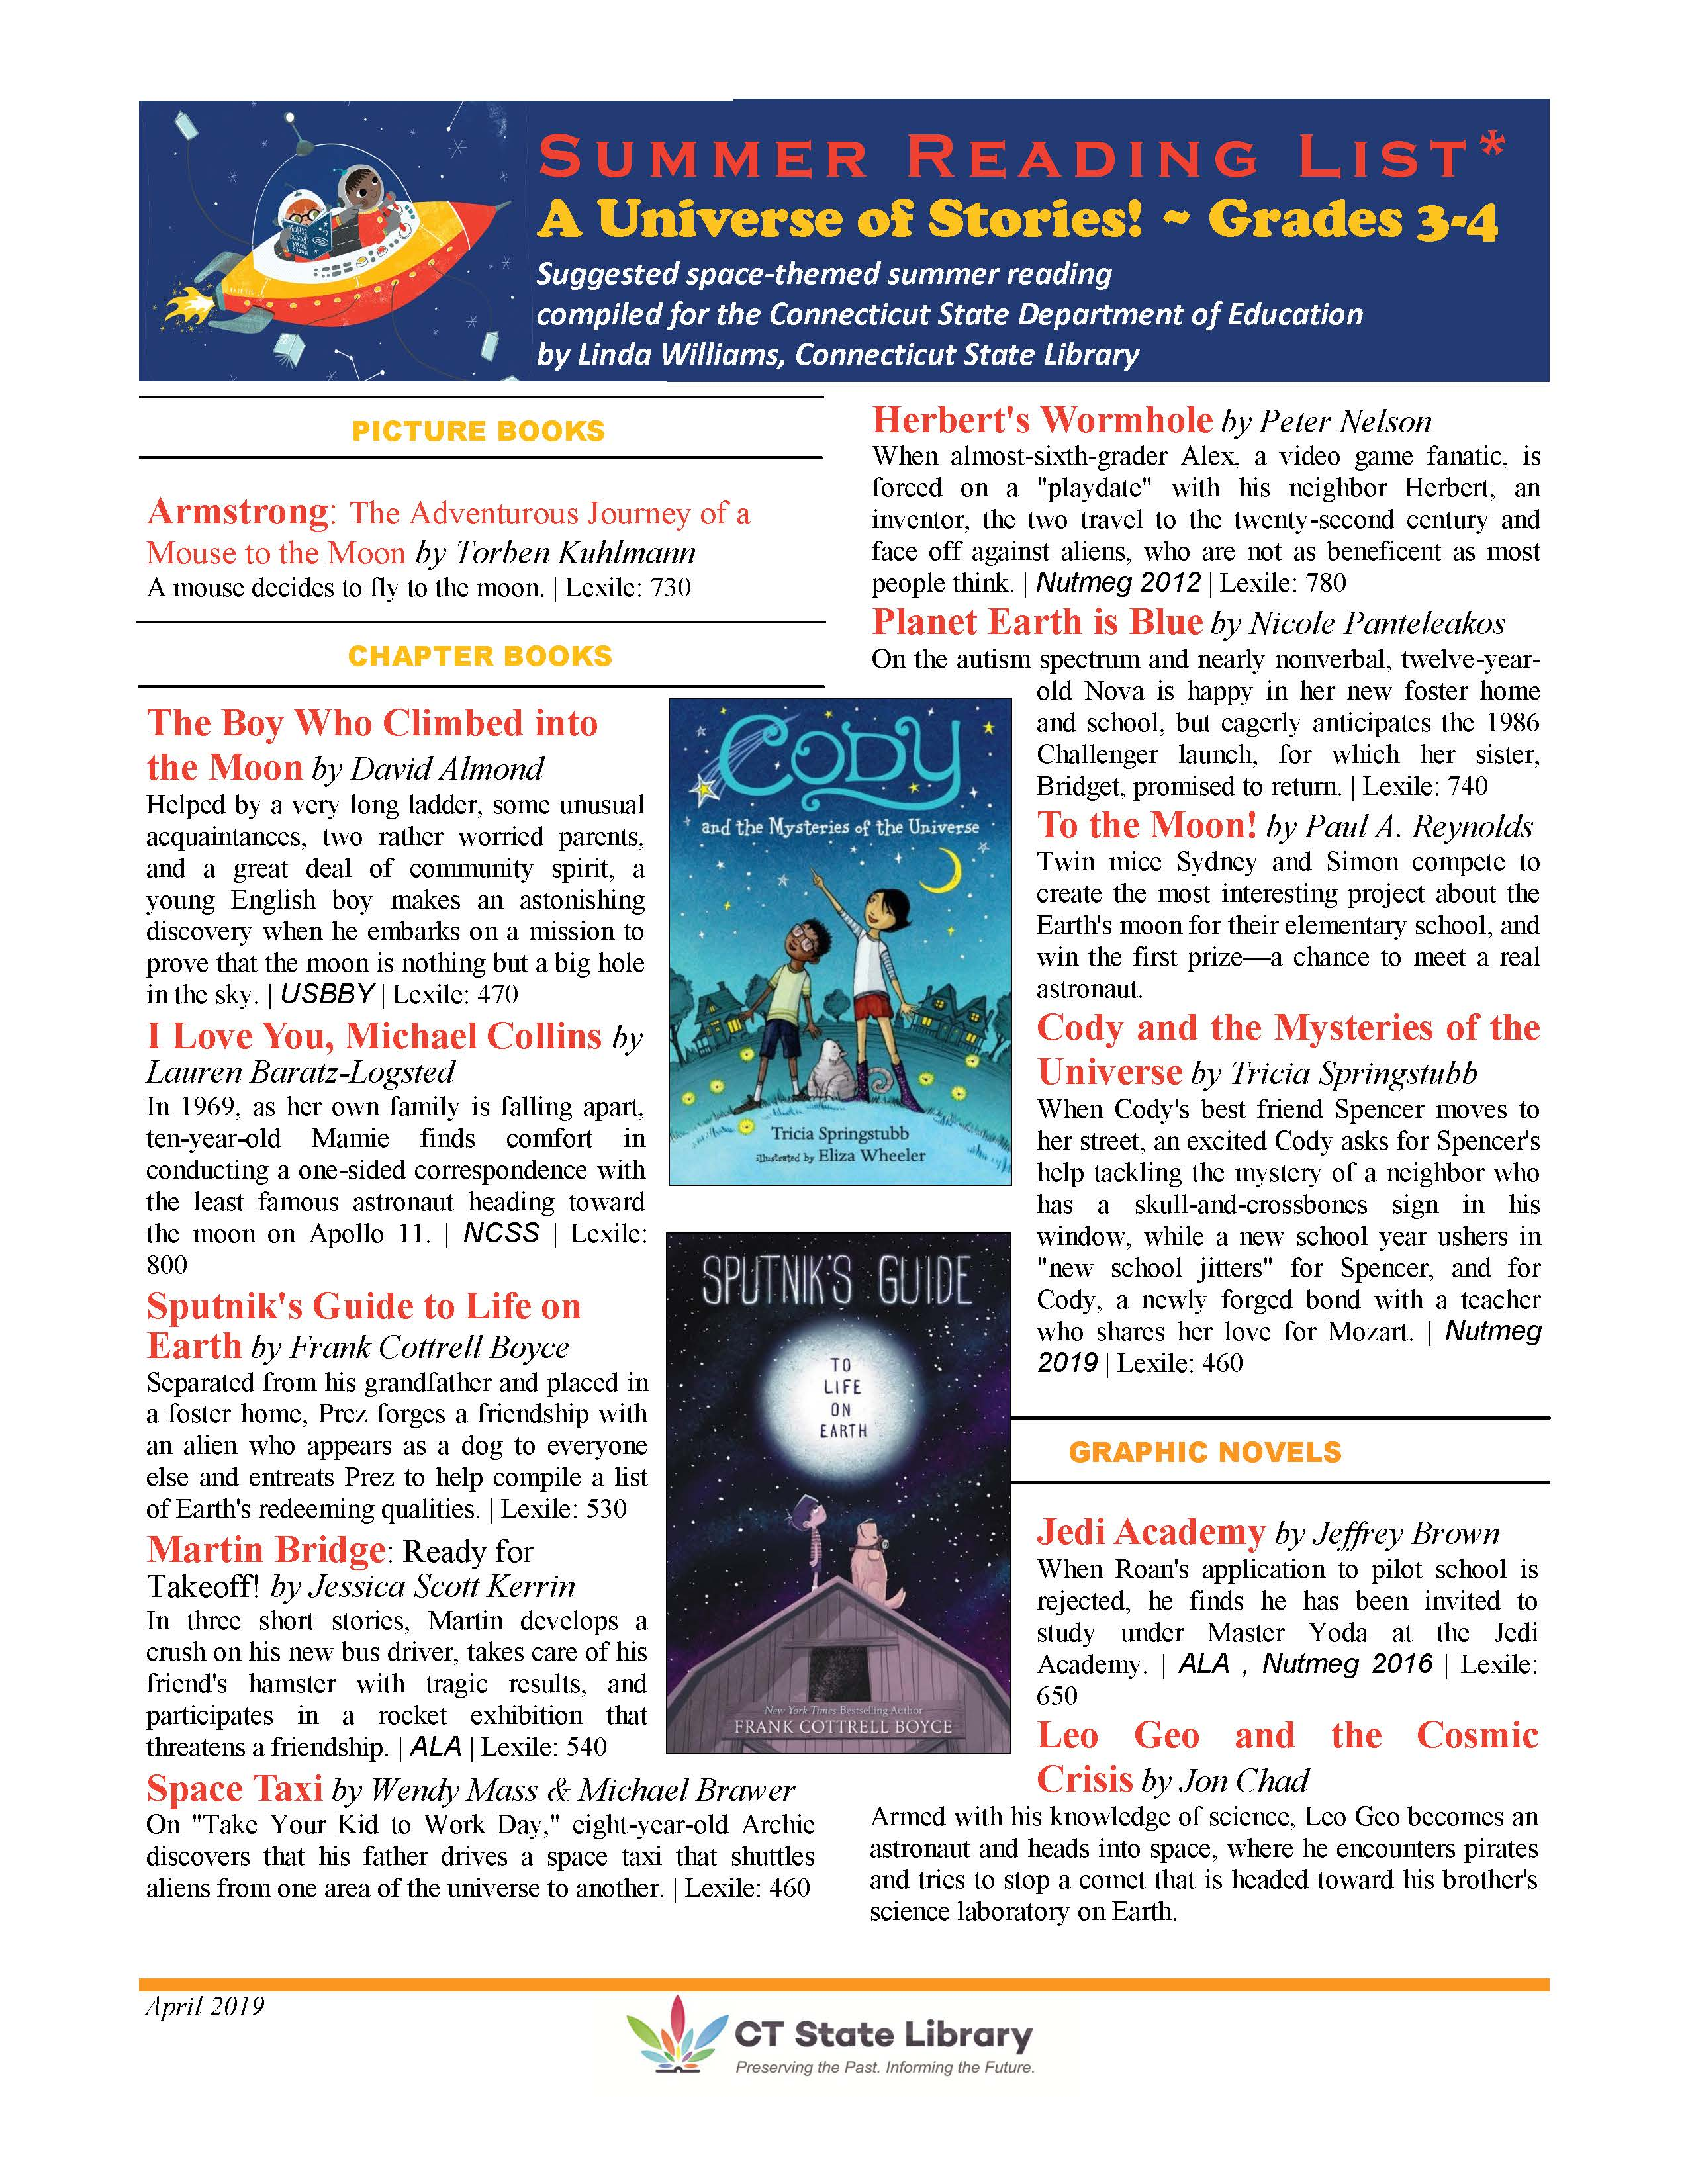 Image of Summer Reading List for Grades 3-4